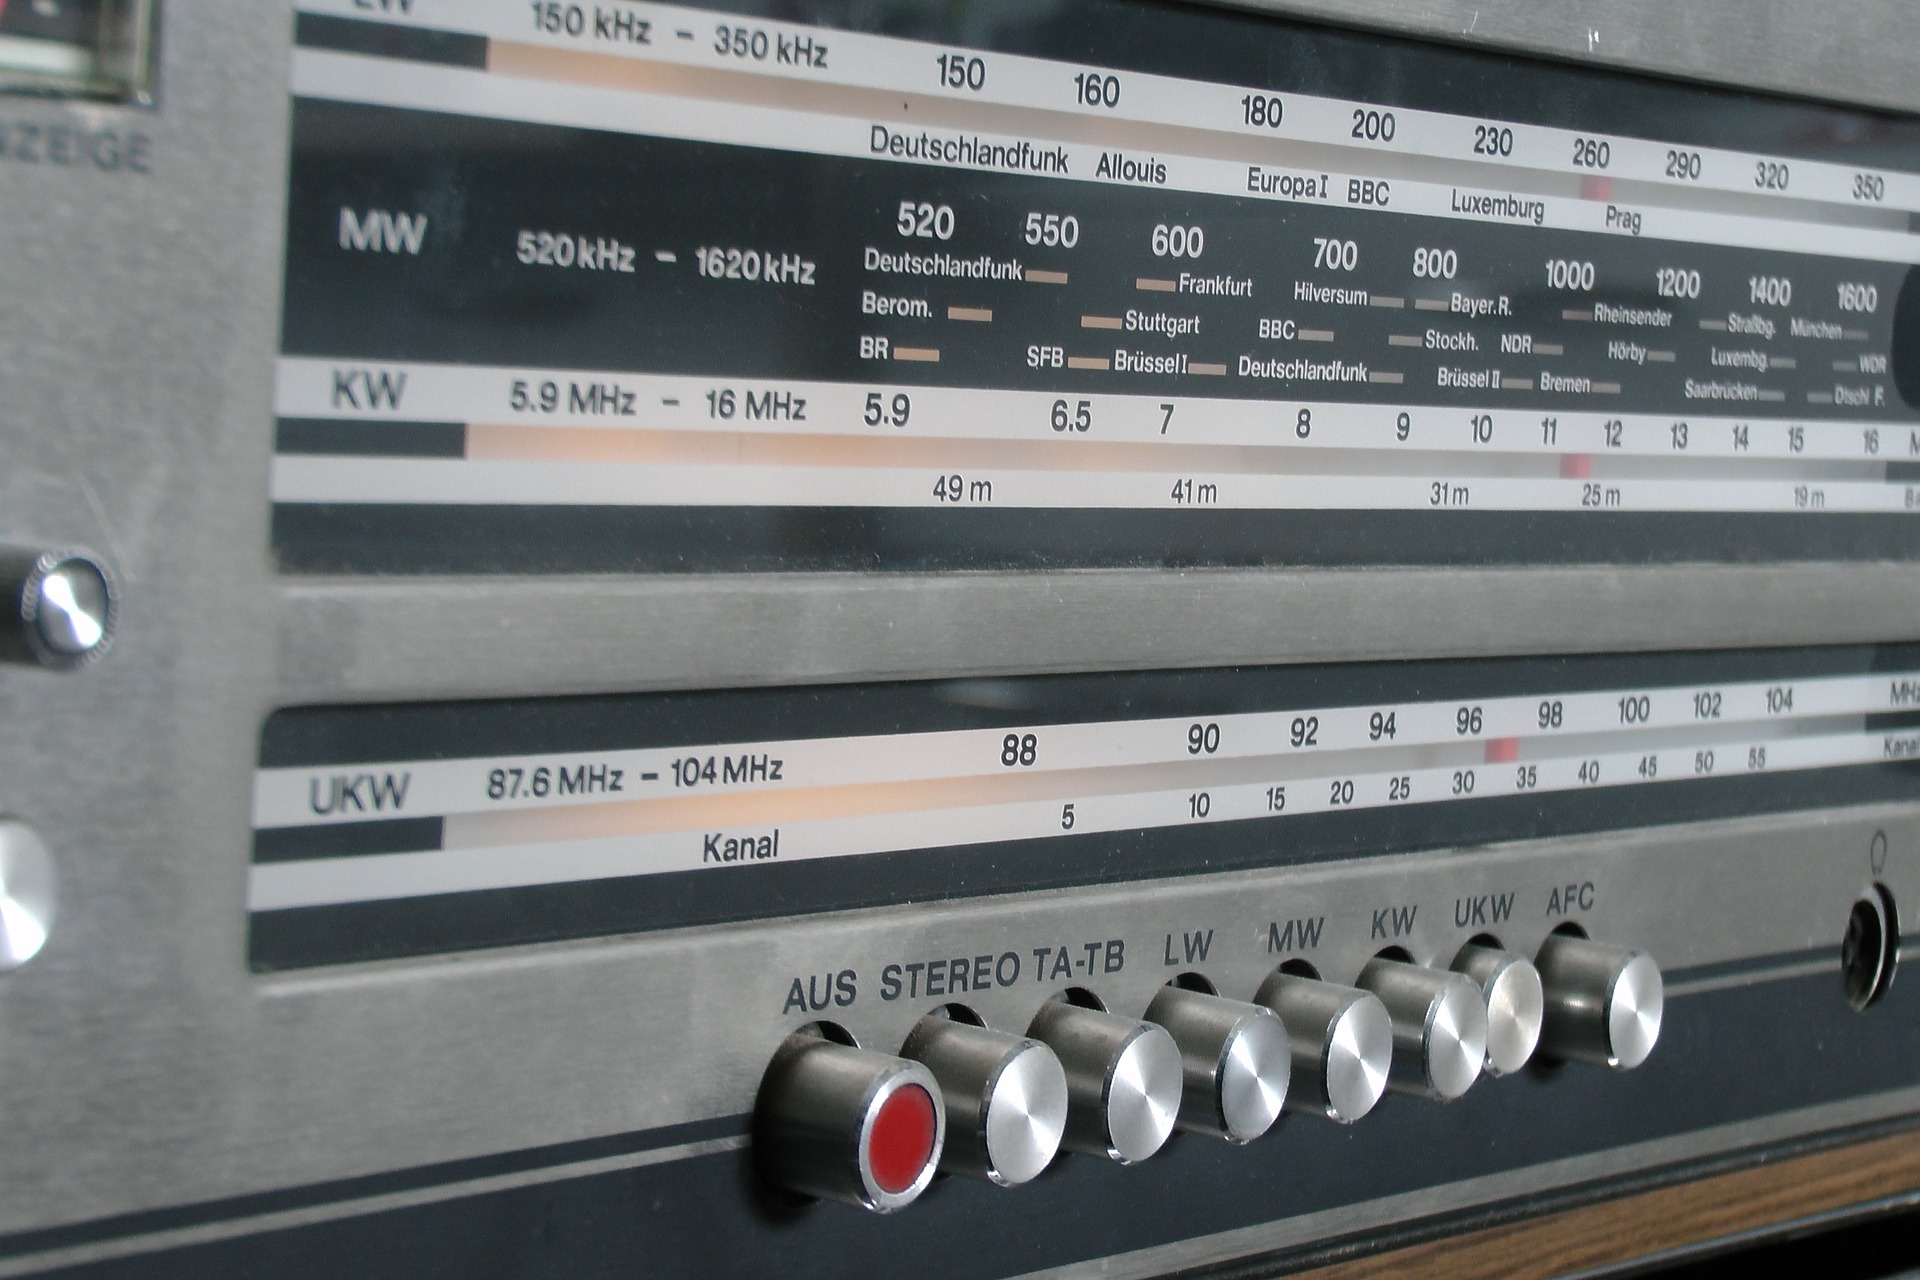 Servicing Fm Receivers Cie Amp Meter For My Rig This Allows You To Use The One Panel Issue Well Take A Look At Such As Those Found In Vhf Uhf Transceiver Lets Assume Youve Been Asked Service